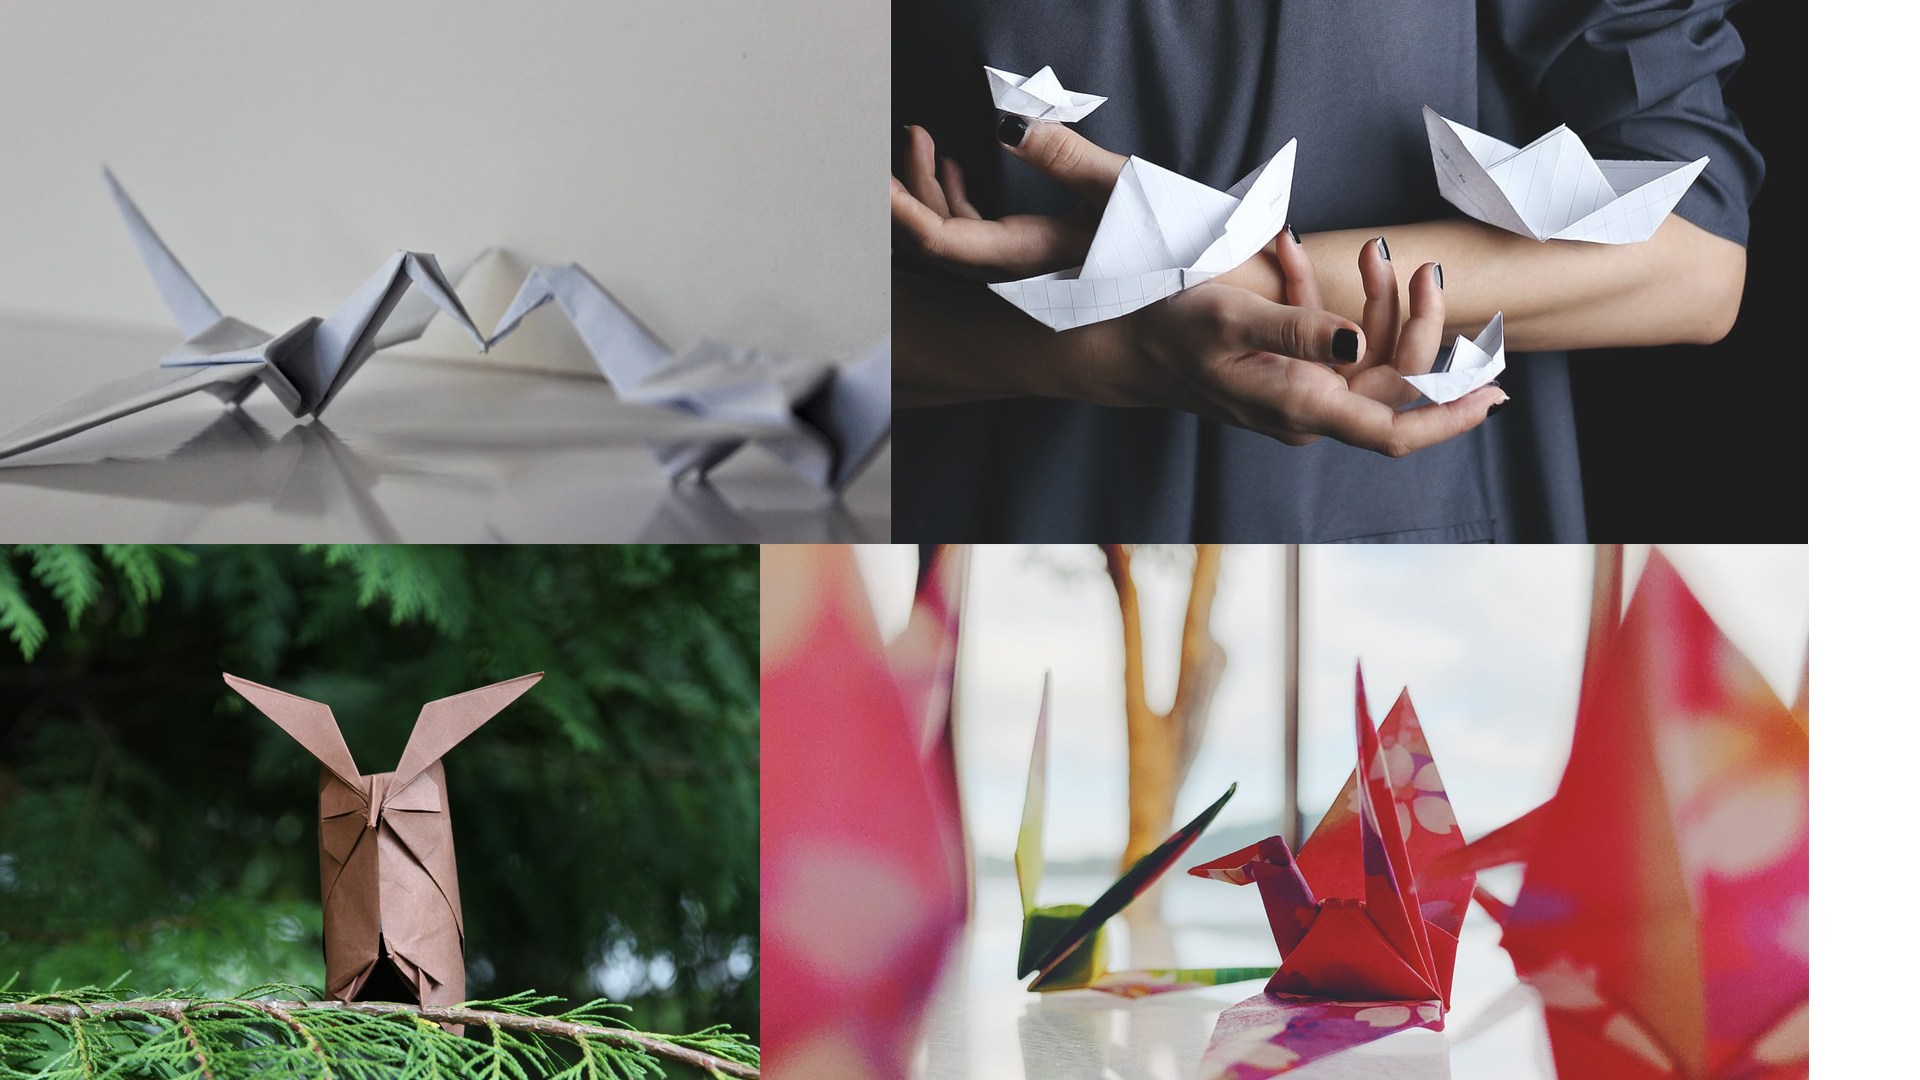 Origami competition